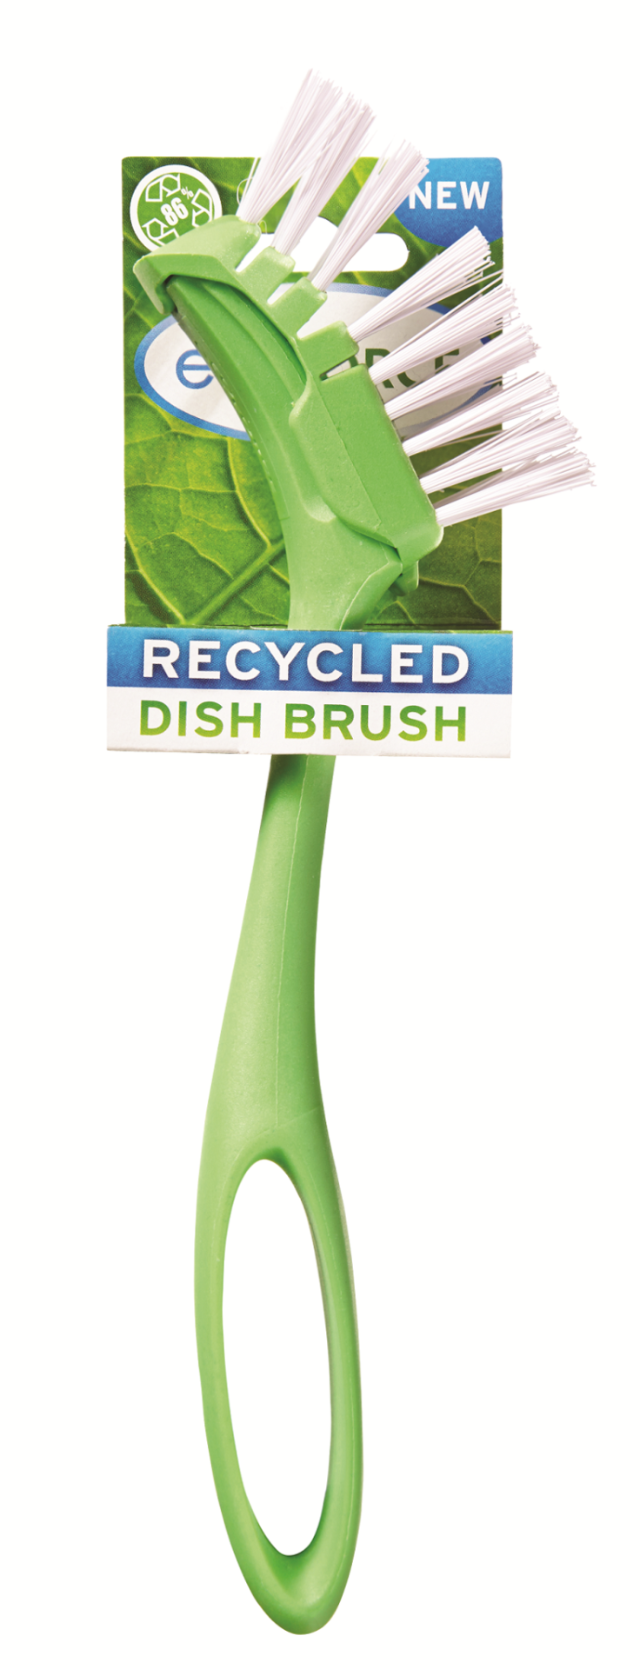 Ecoforce Washing Up Brush - New Internationalist New Zealand